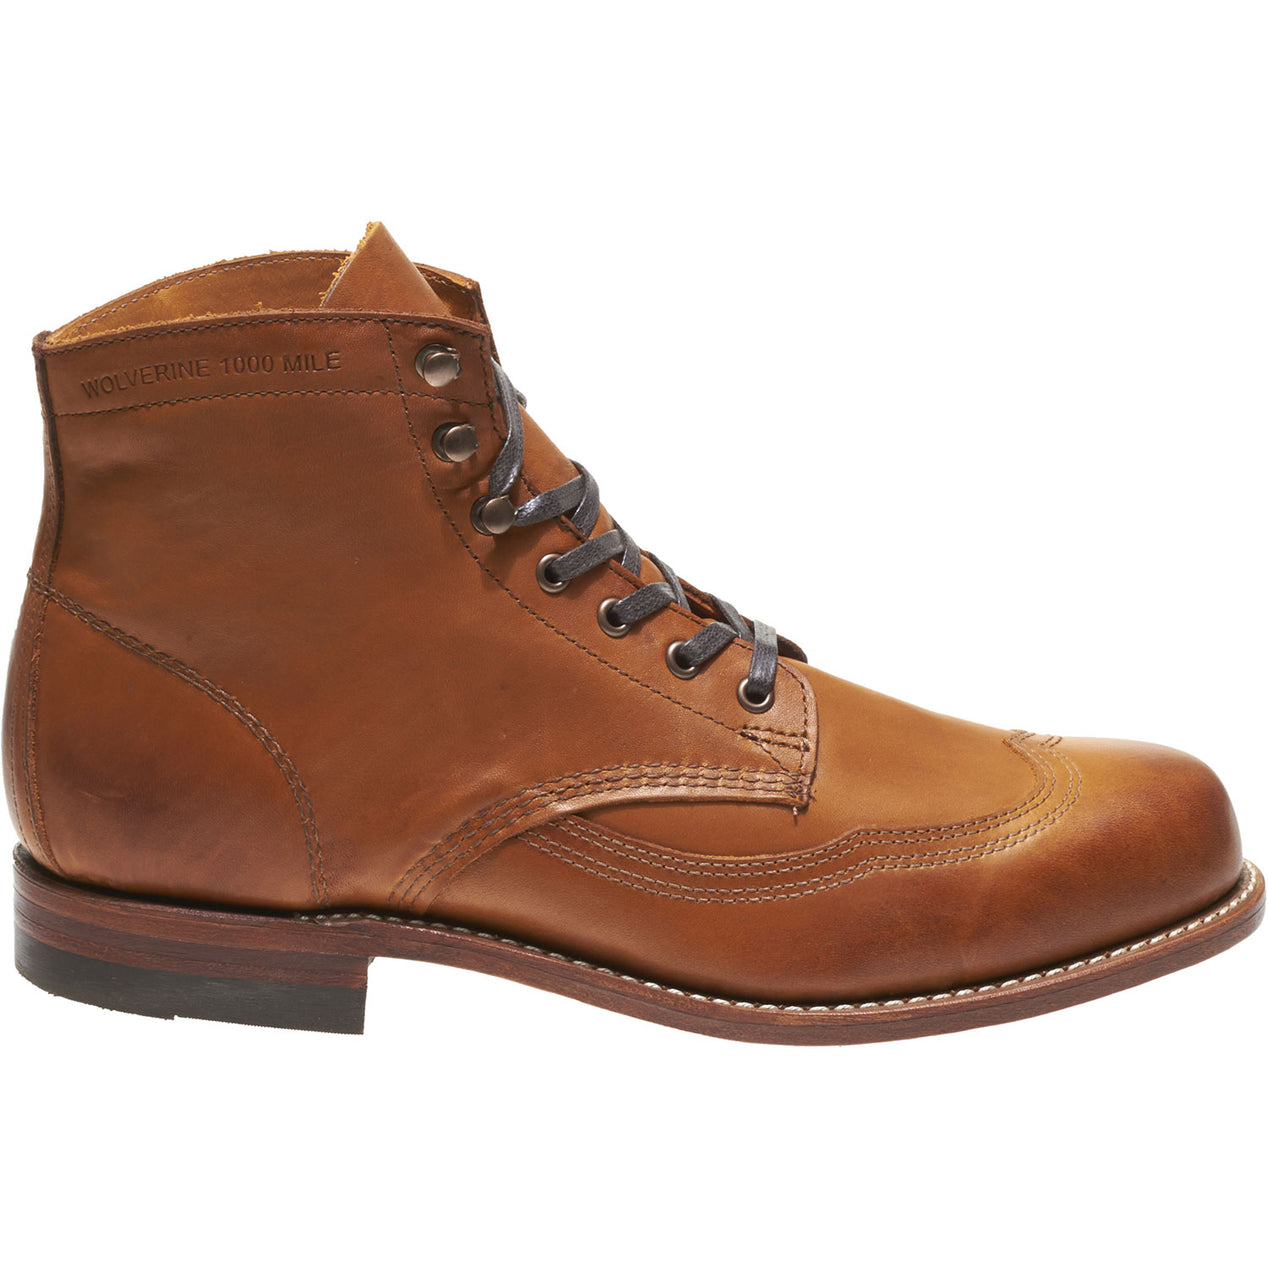 1c65b6ecf70 Men's Addison 1000 Mile Wingtip Boots